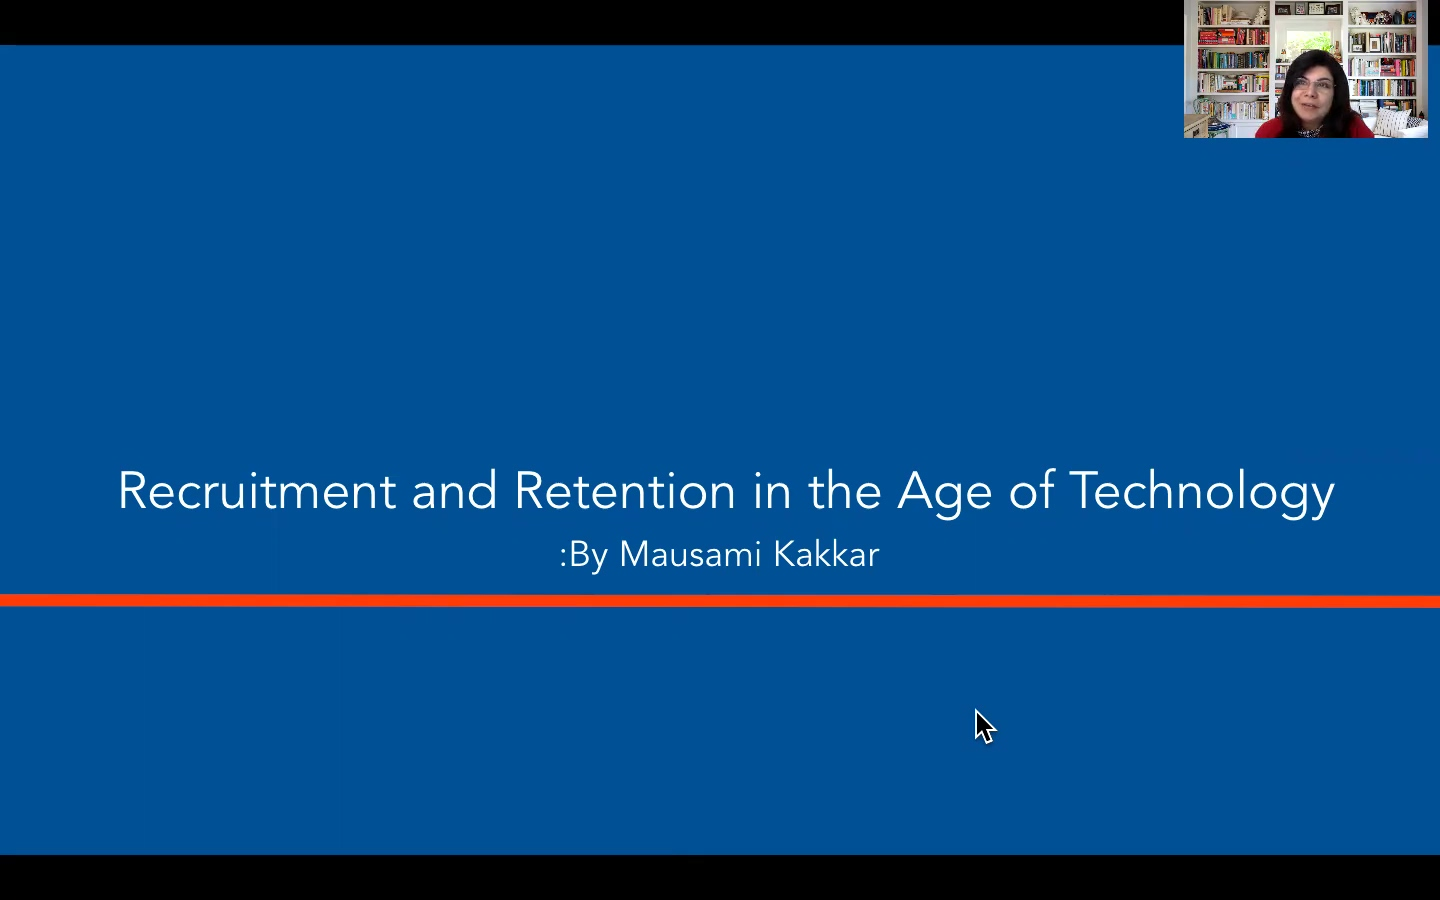 Recruitment and Retention in the Age of Technology-M.Kakkar